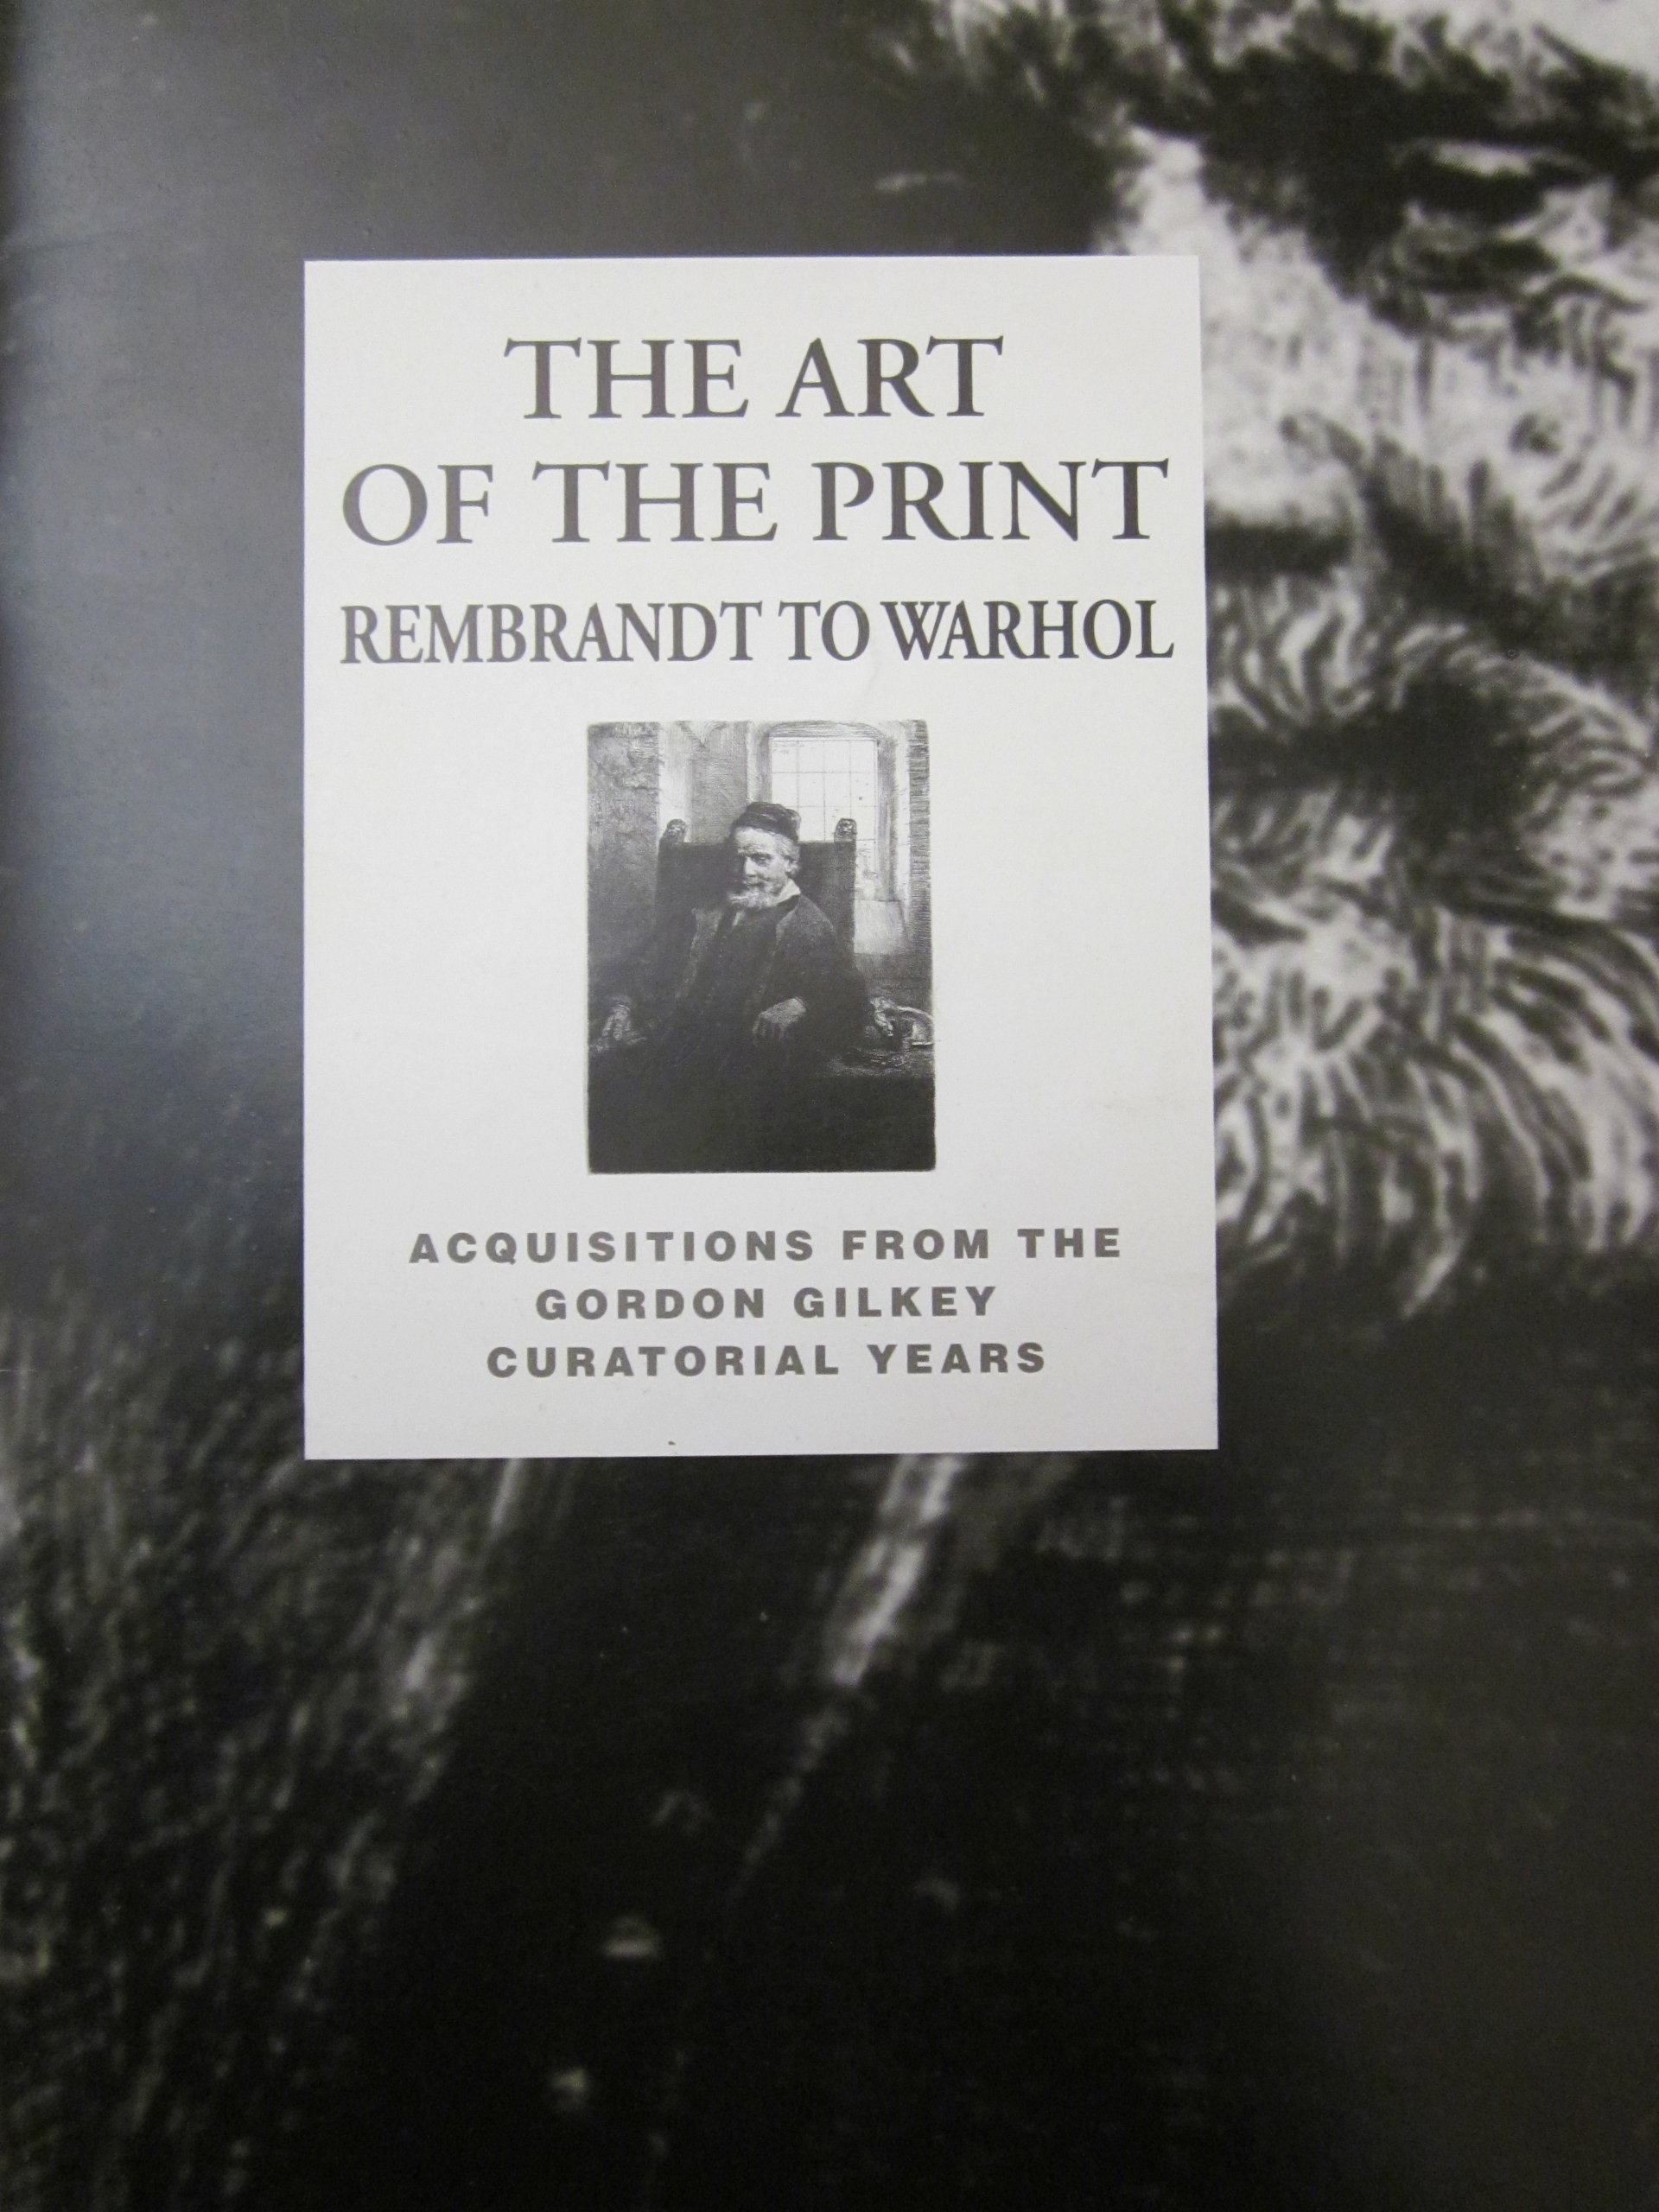 the art of the print rembrandt to warhol acquisitions from the gordon gilkey curatorial years